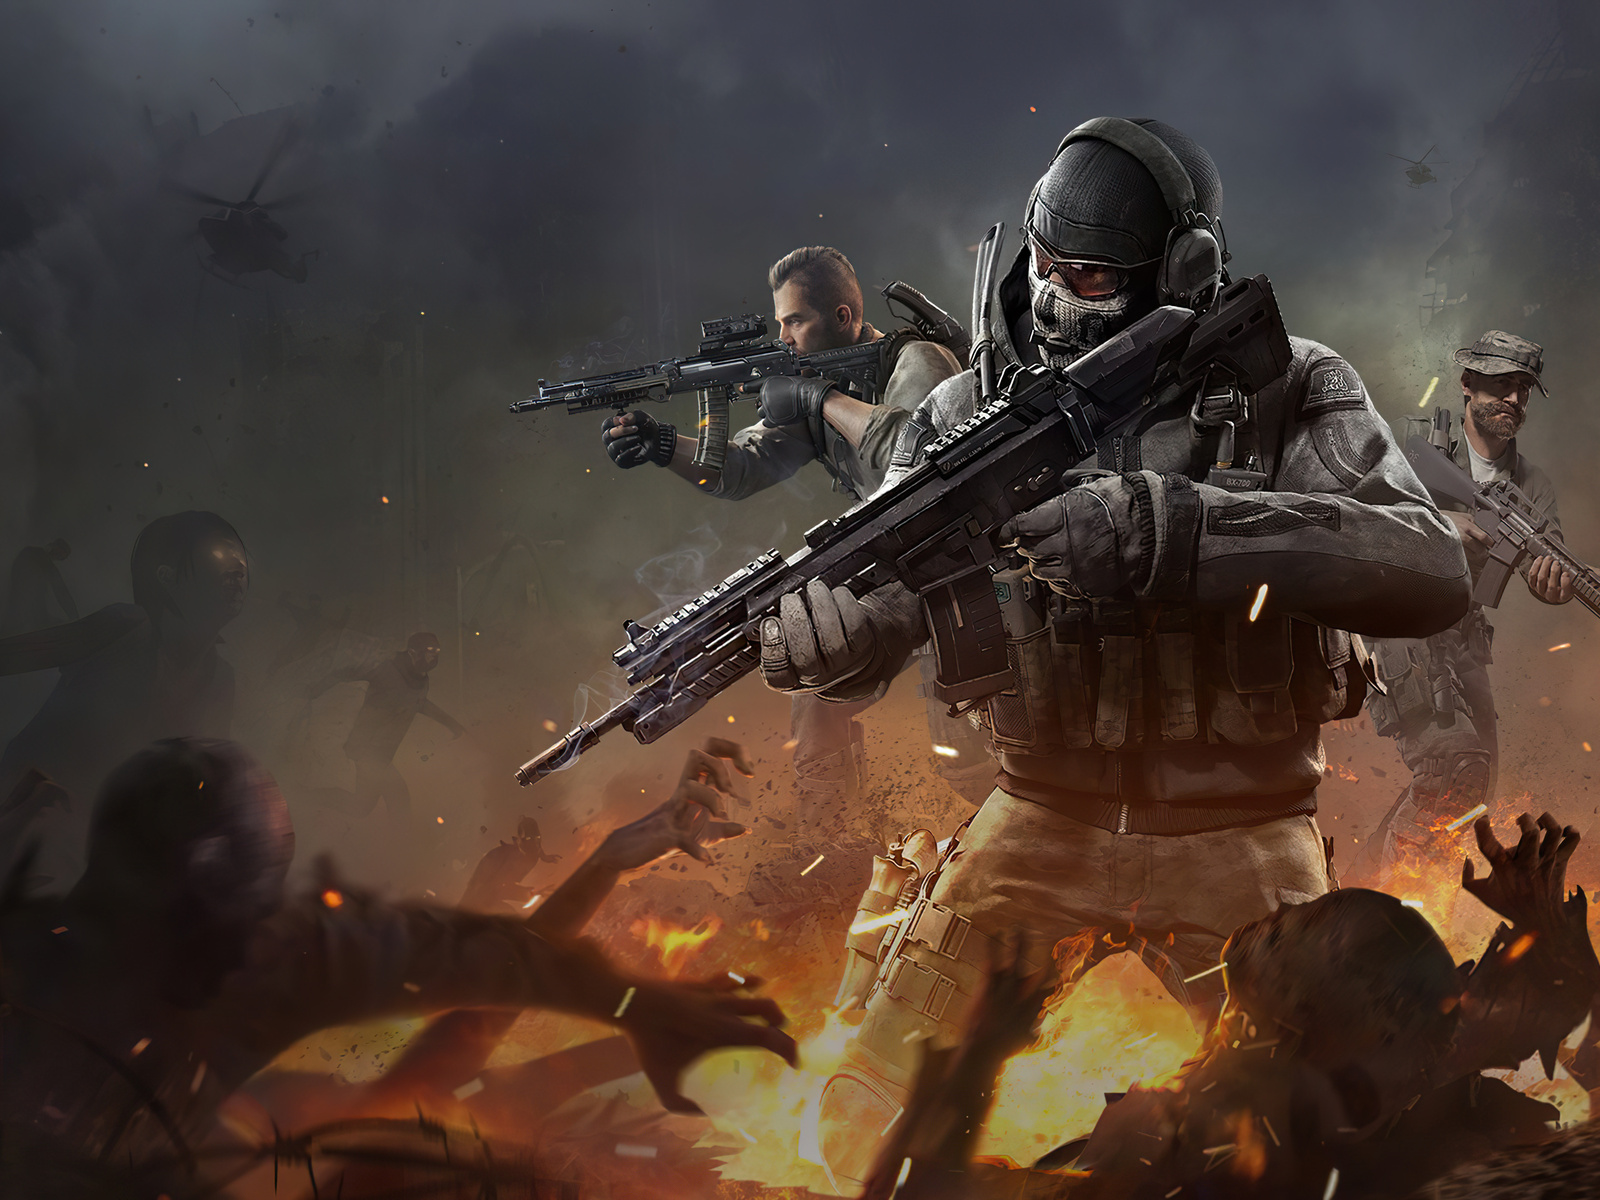 1600x1200 Call Of Duty Mobile Ghost Character 4k 1600x1200 ...